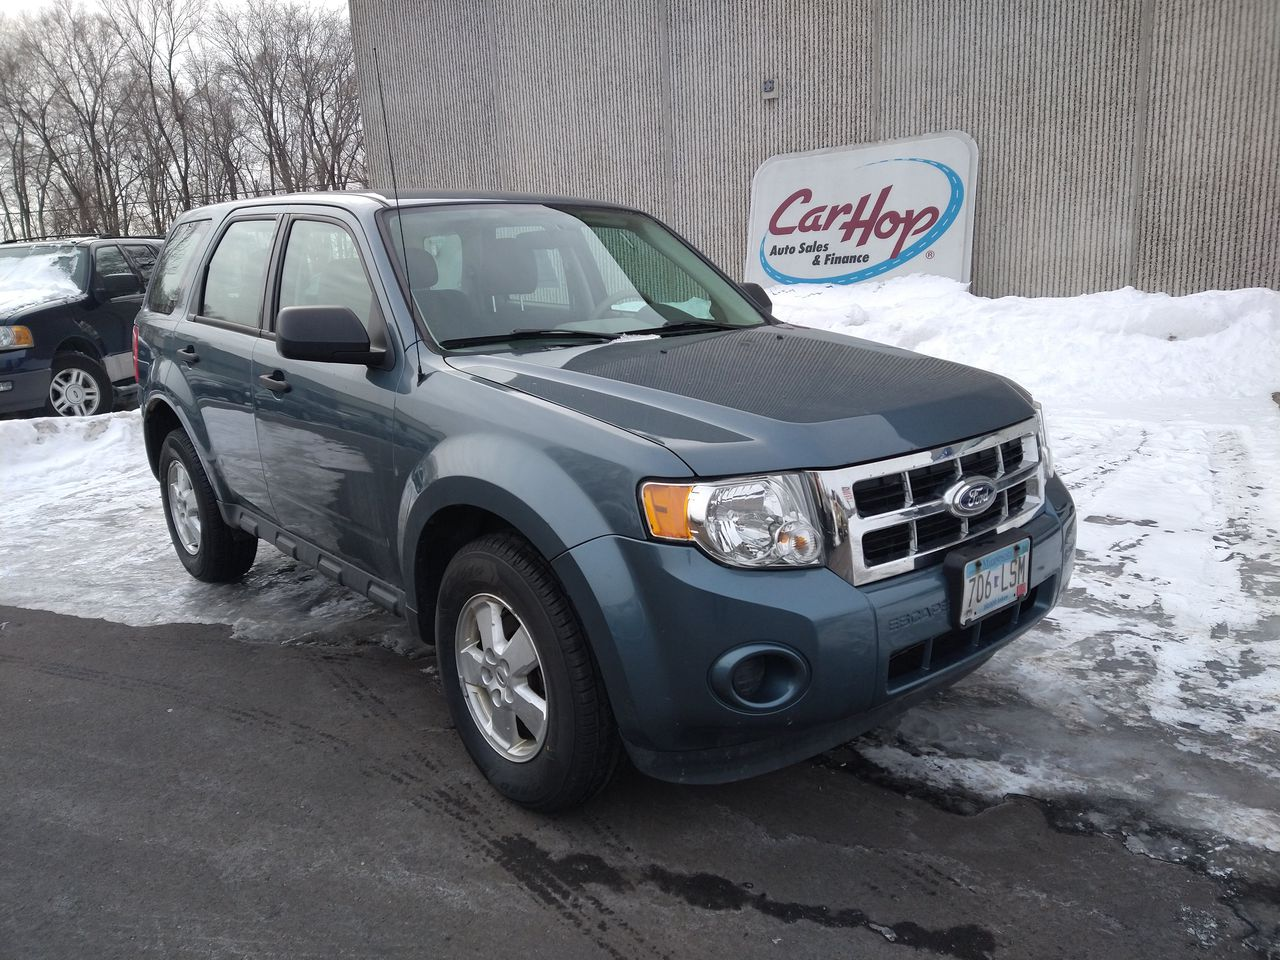 Pre-Owned 2011 FORD ESCAPE XLS Sport